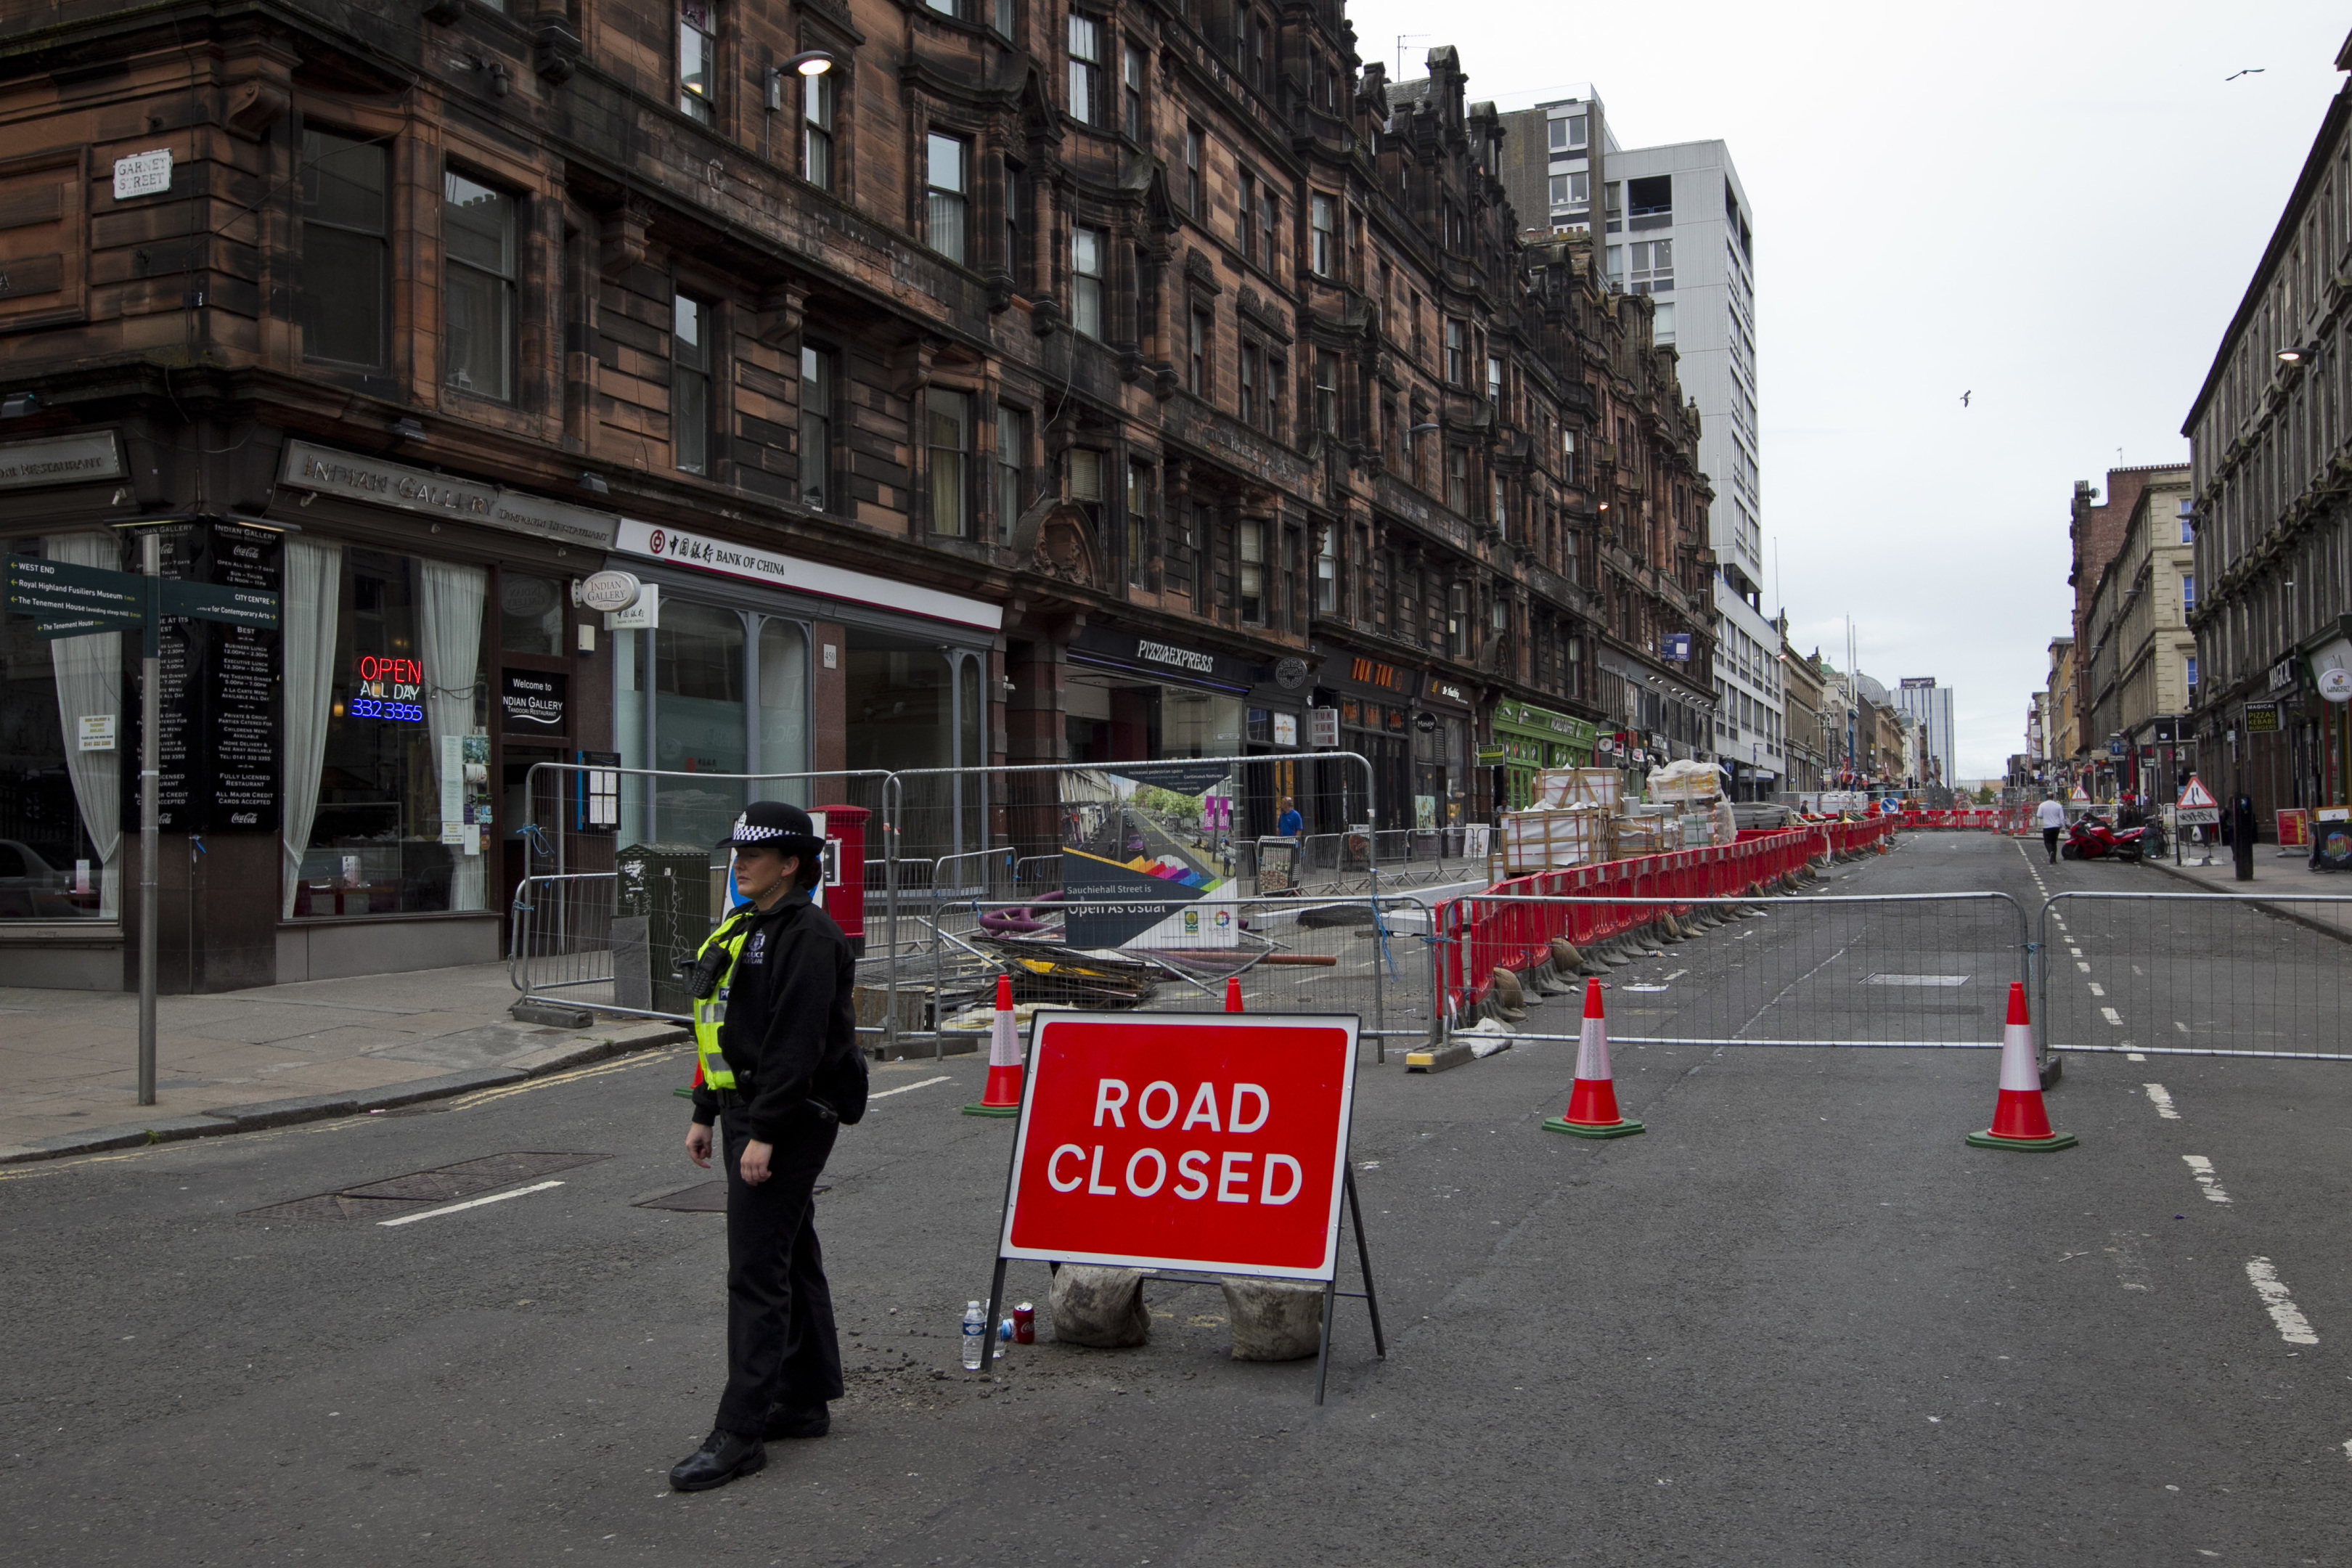 The area around the scene of the fire has been closed off (Andrew Cawley / DC Thomson)